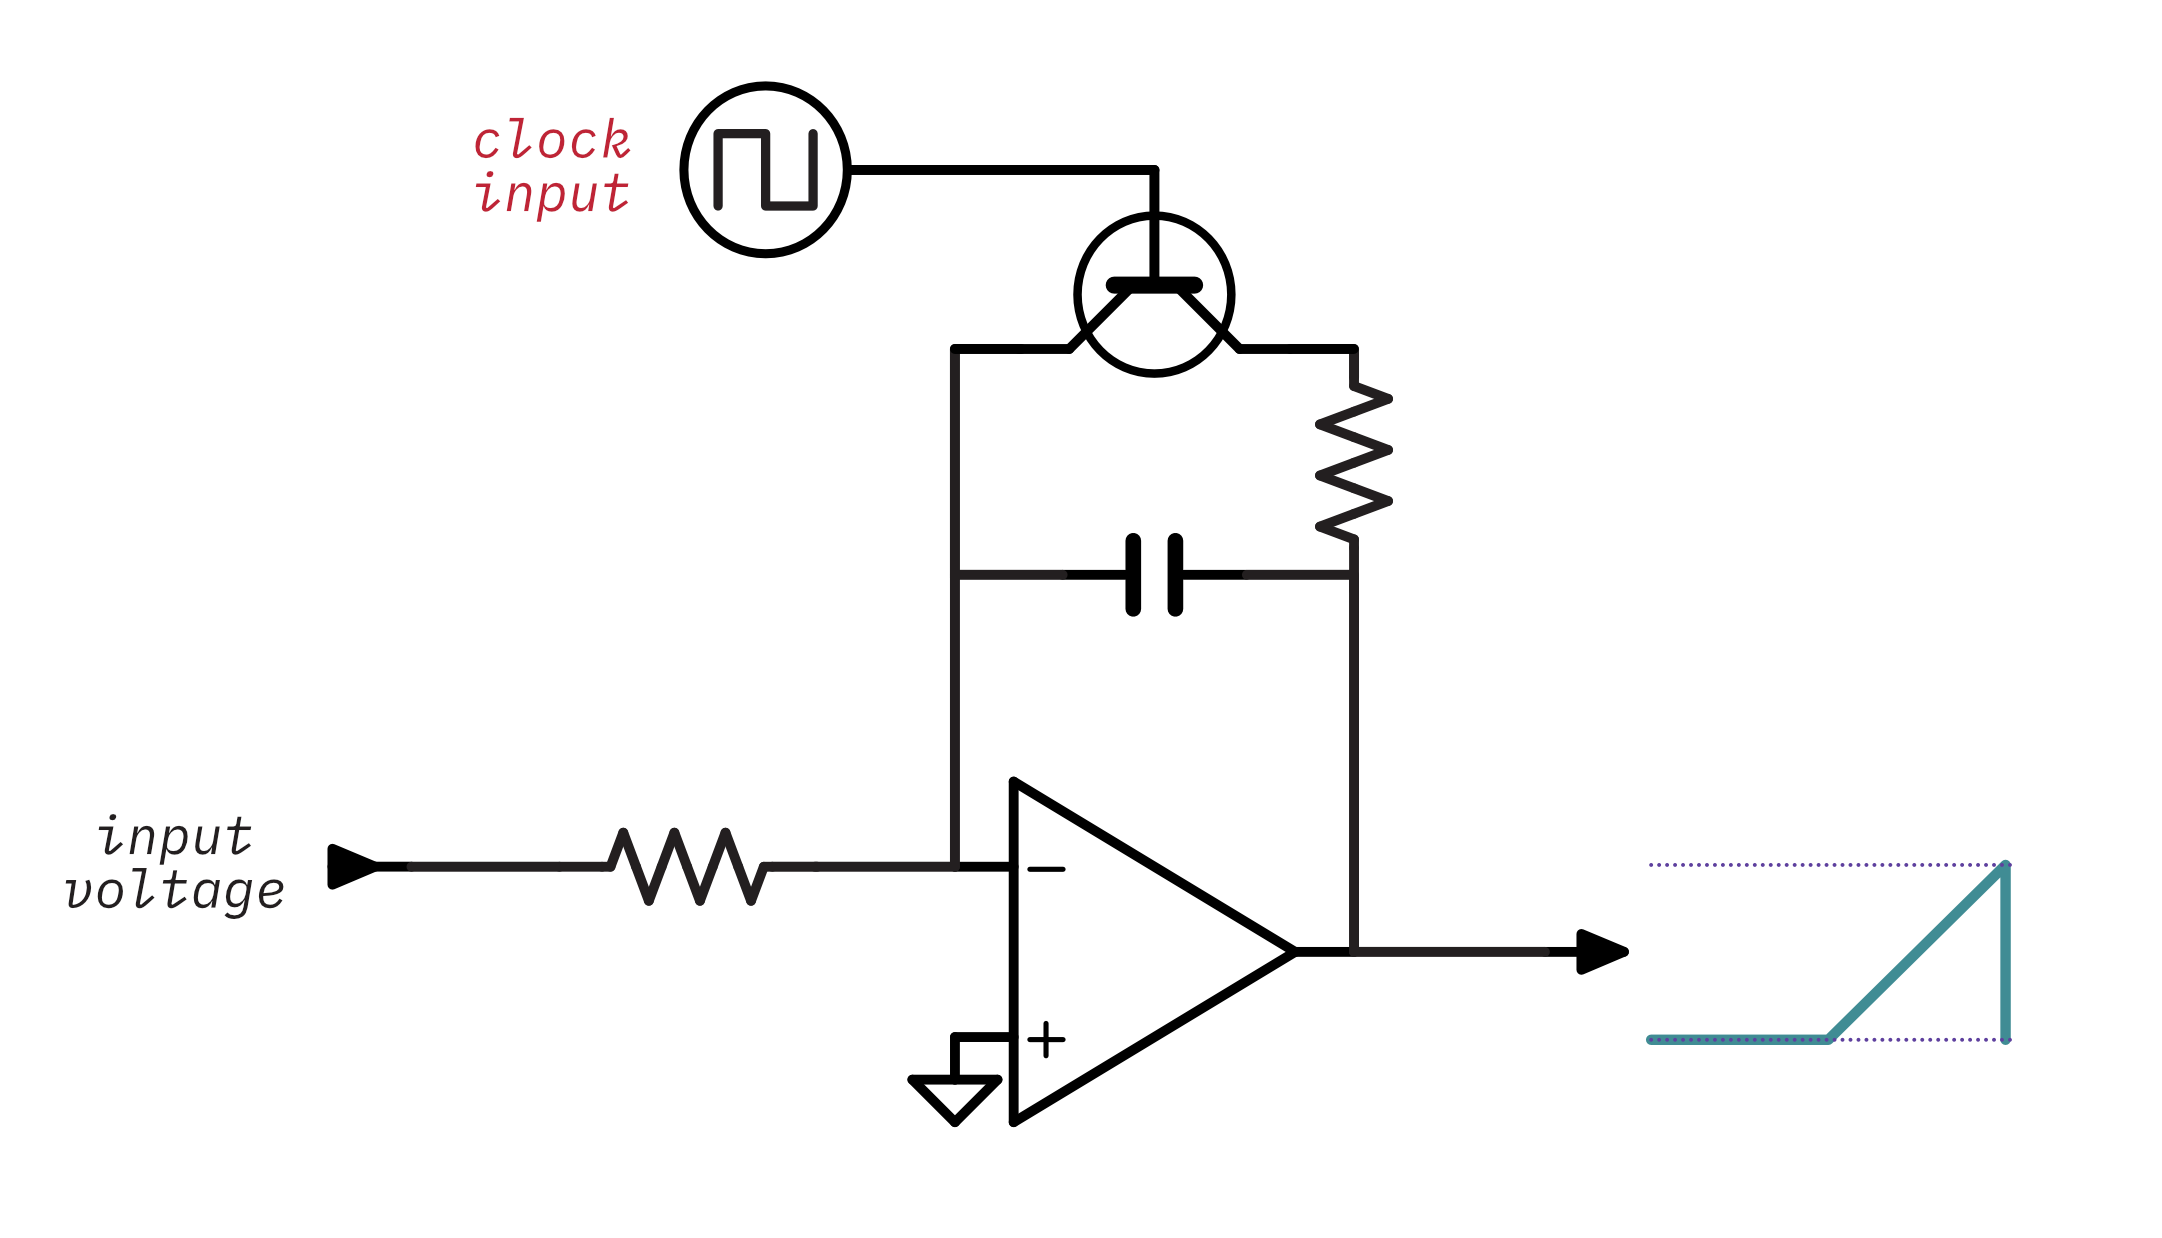 A dco with the clock directly connected, showing an output that's flat for half of the time